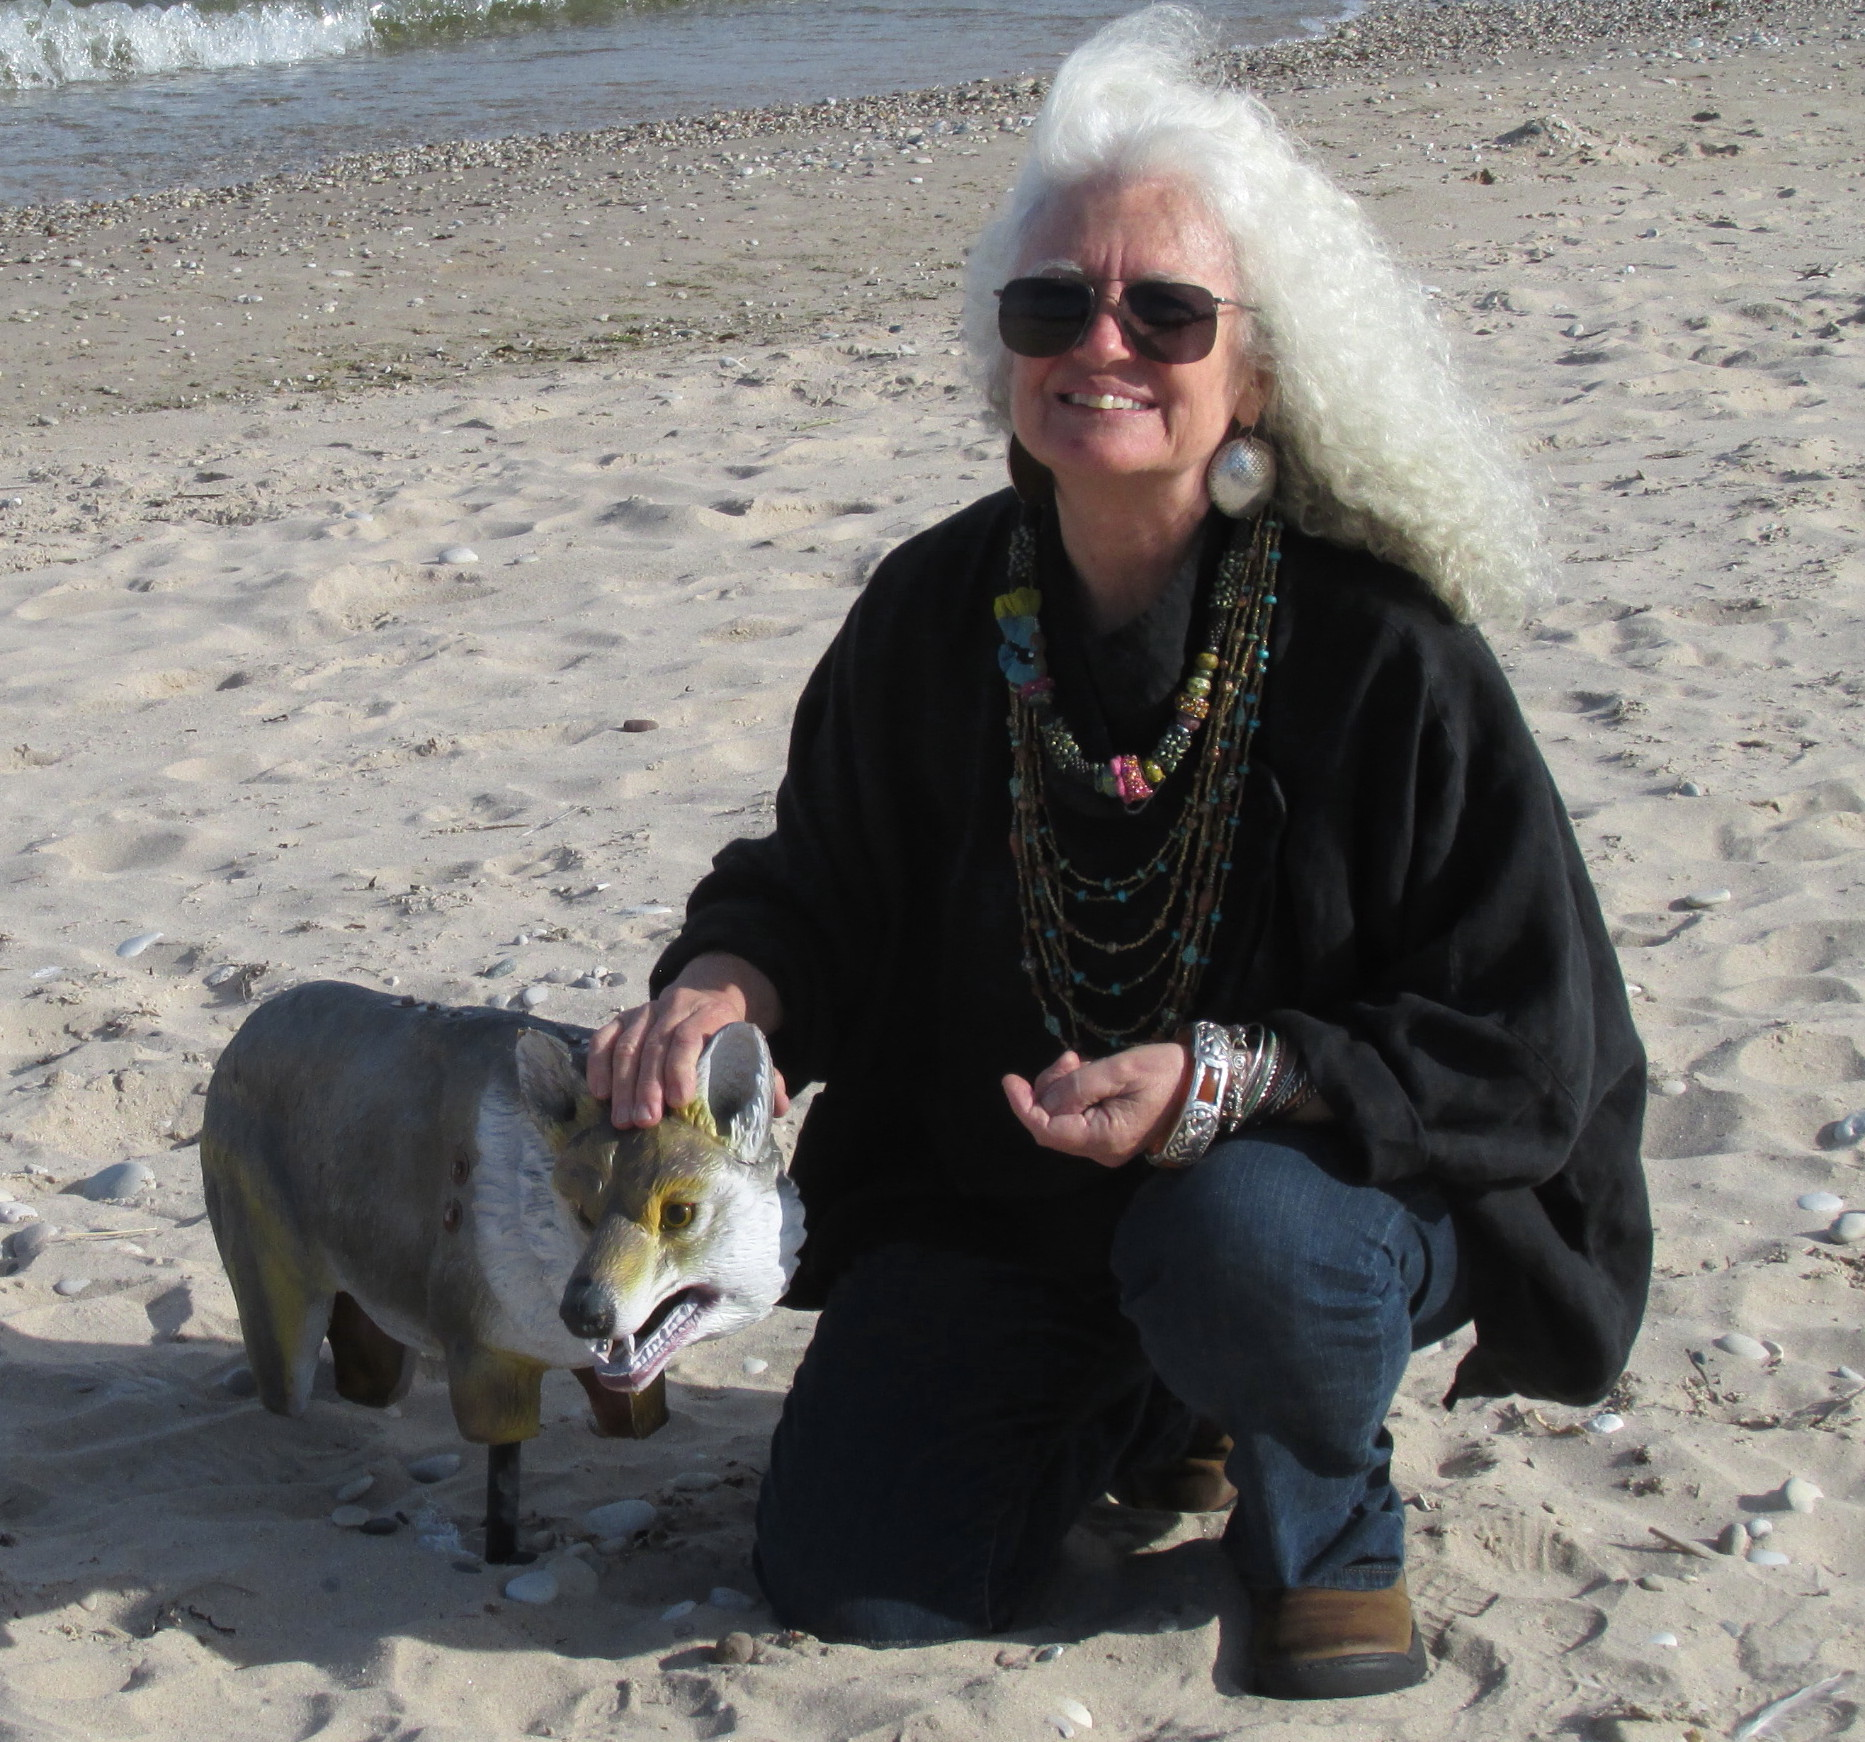 Judie on the beach visiting with one of the rubber foxes that inhabit the sand to help keep away the birds.